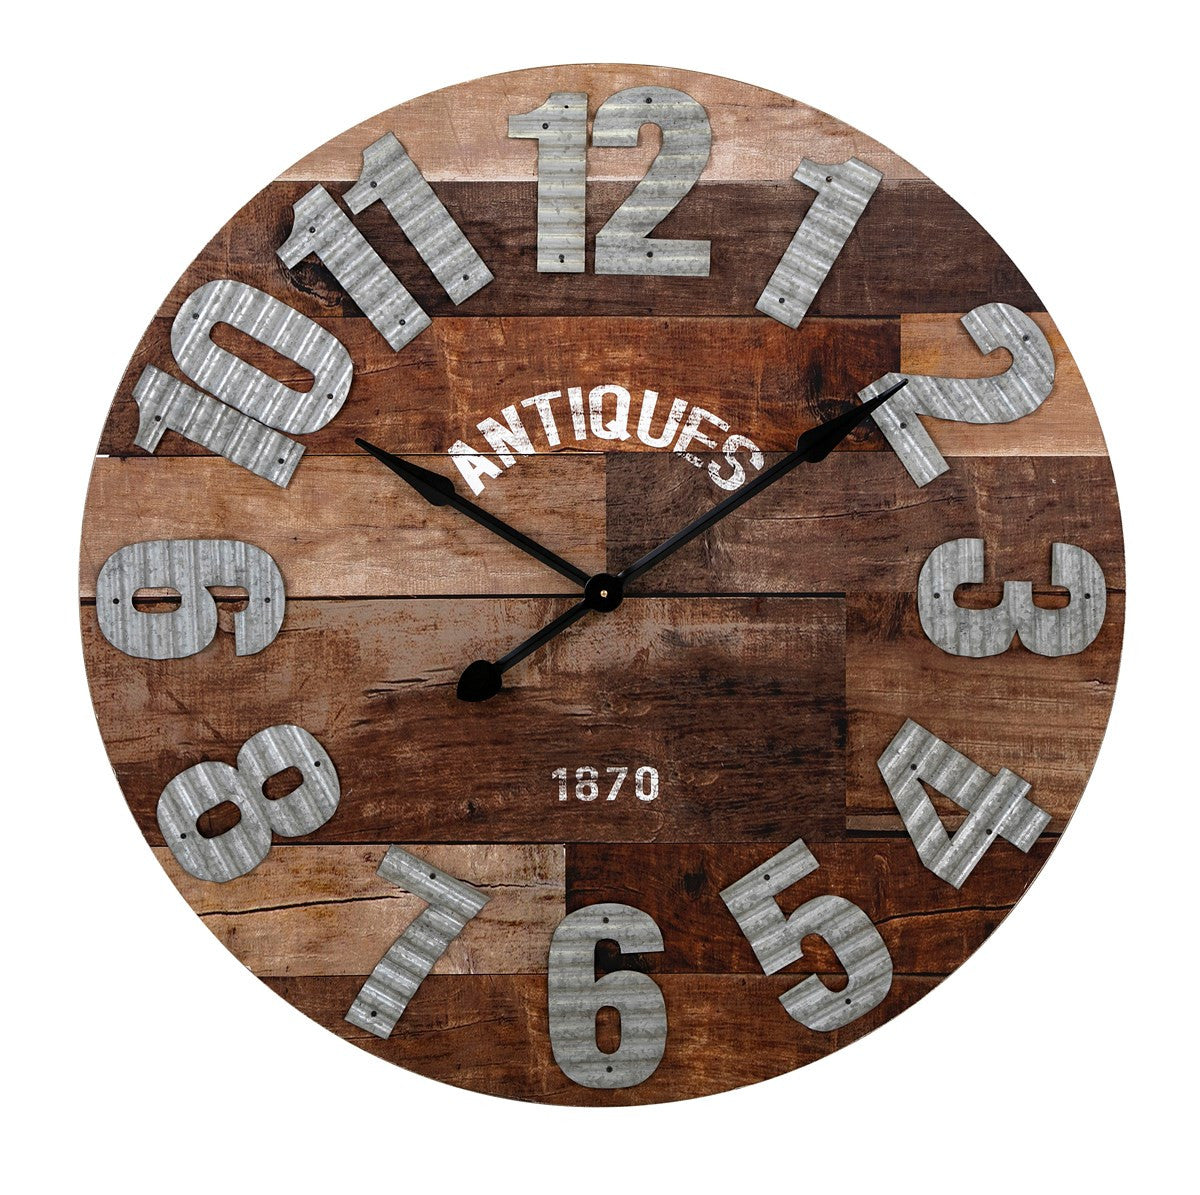 Antiques wood and metal wall clock antiques wood and metal wall clock premier home gifts amipublicfo Images